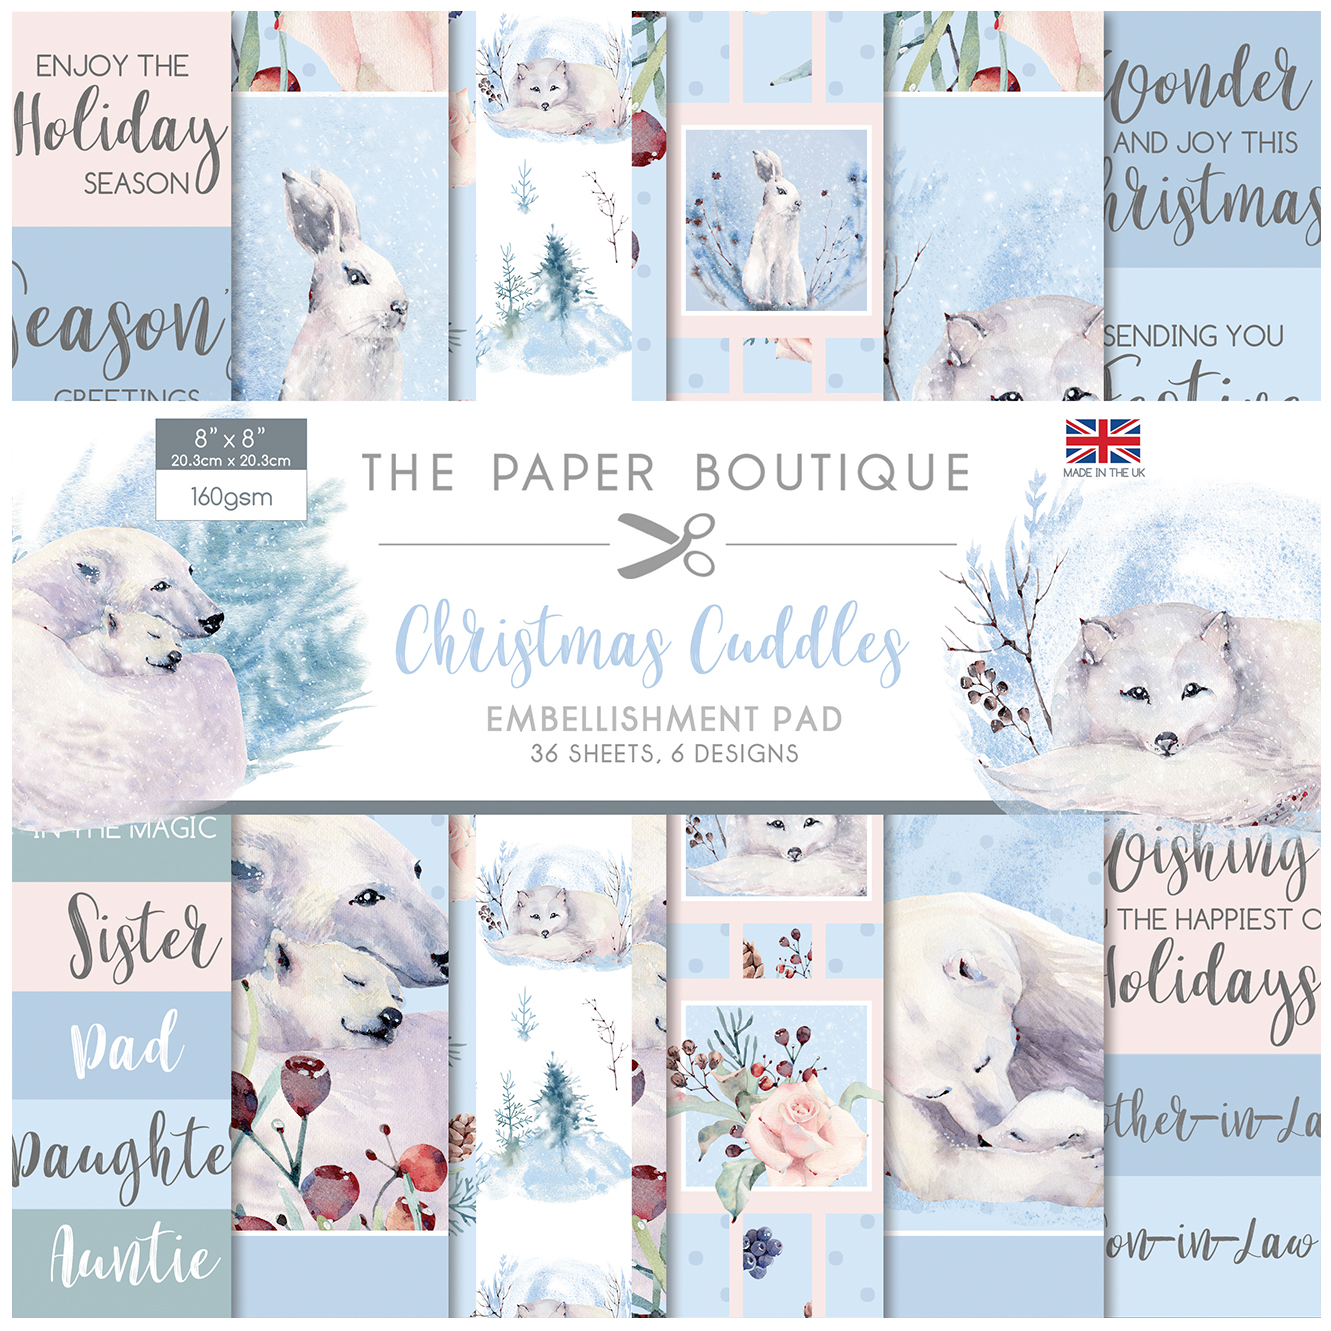 The Paper Boutique Christmas Cuddles 8″ x 8″ Embellishment Pad